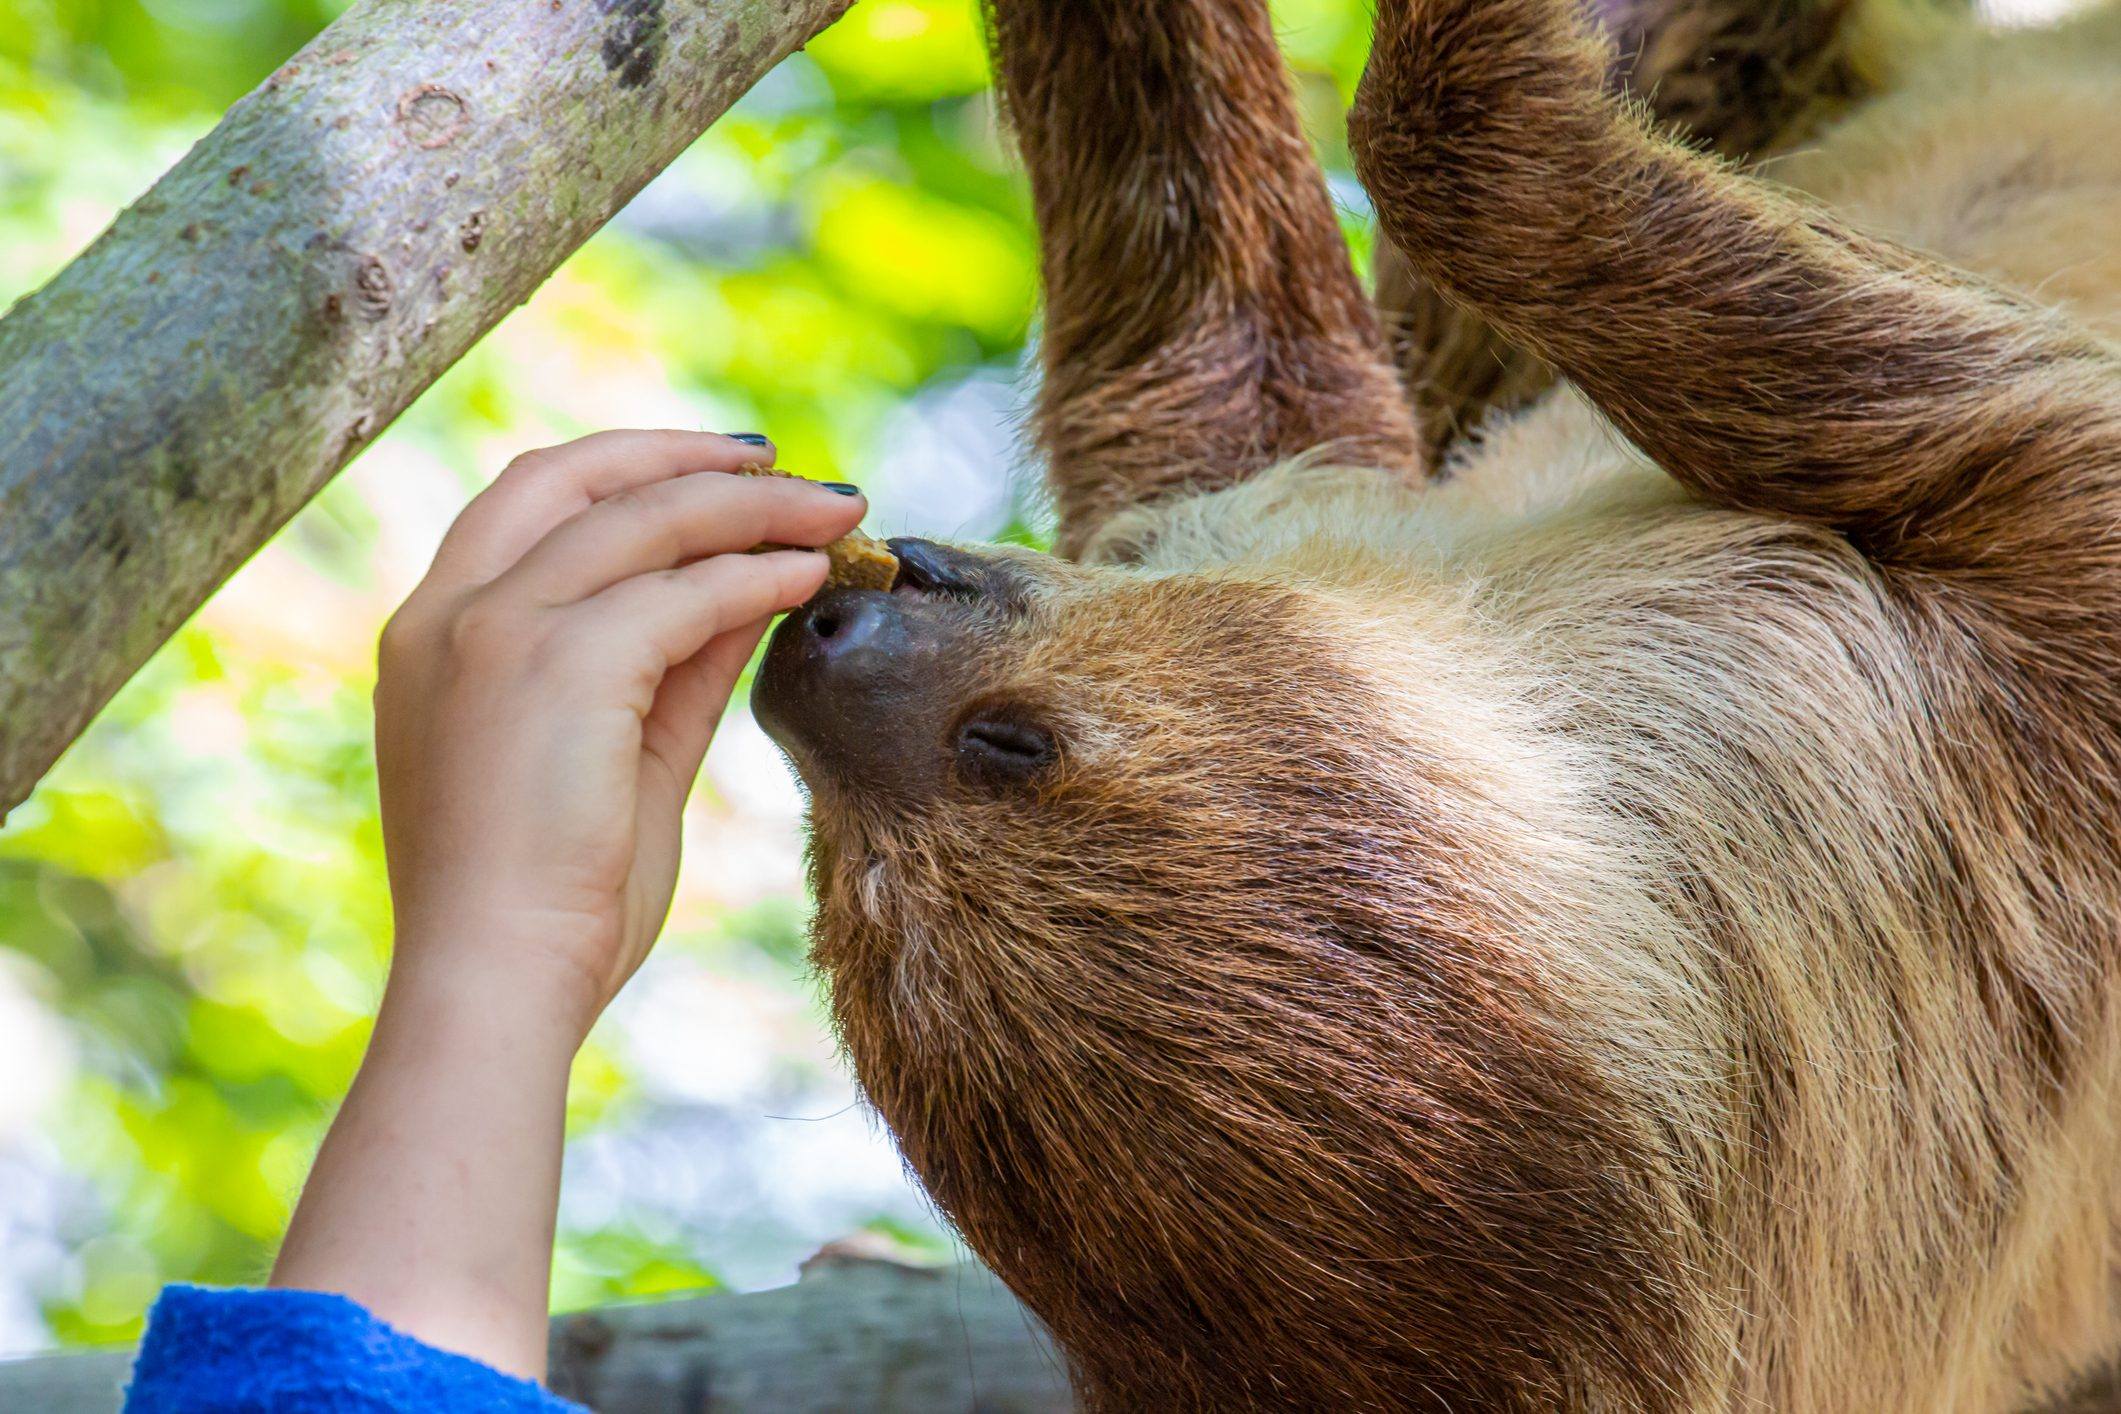 Two-toed sloth being handfed while hanging on branch